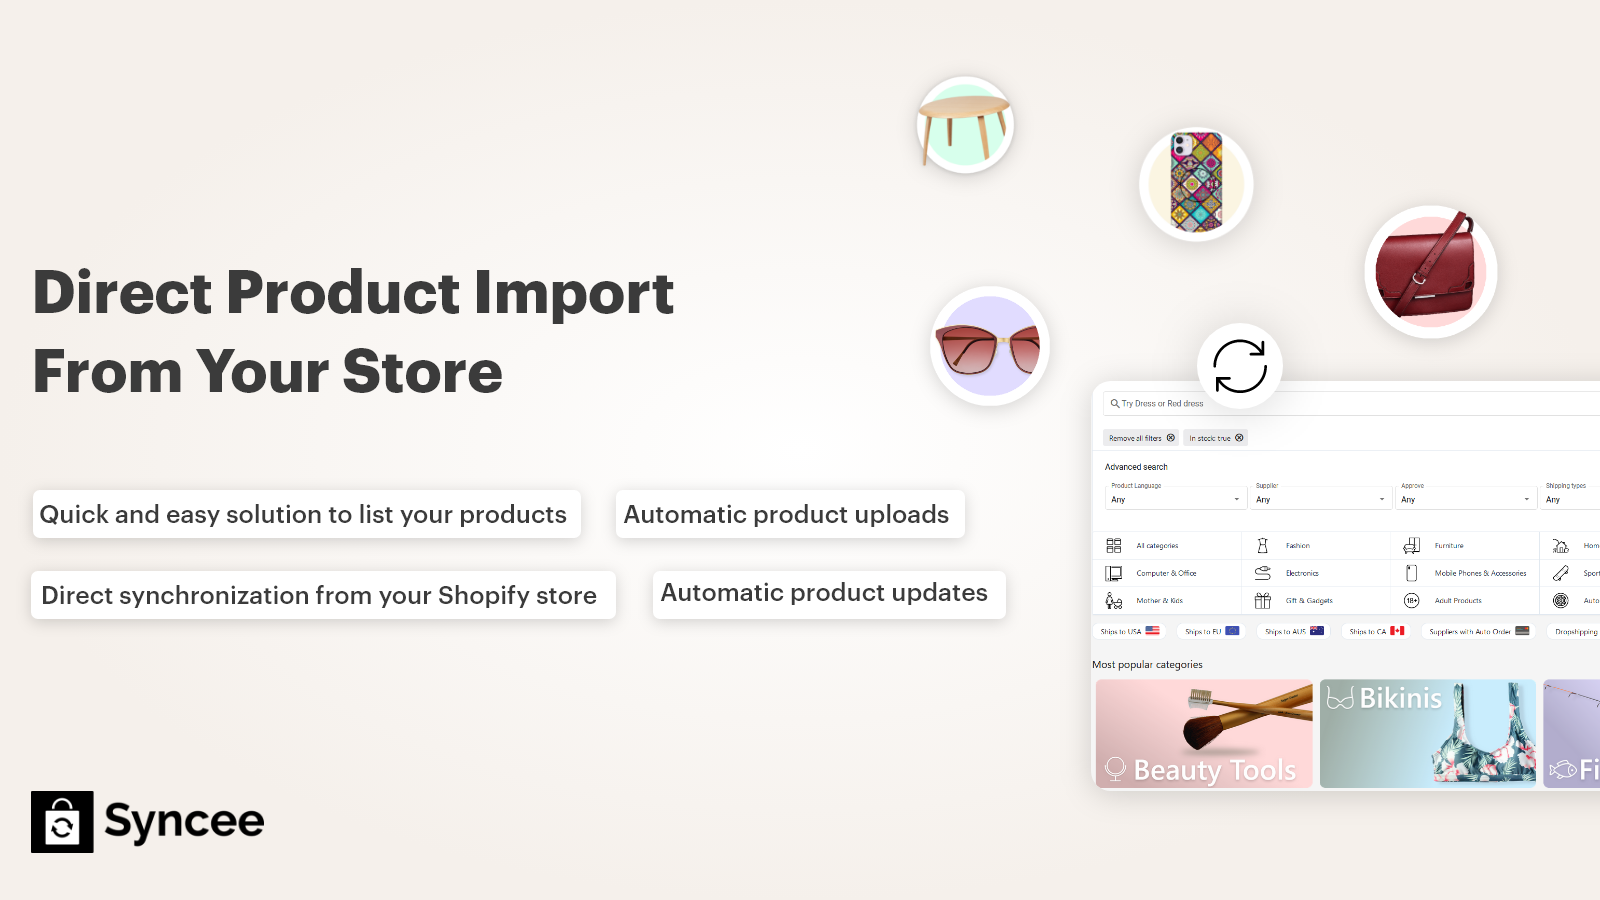 Direct product import from your store